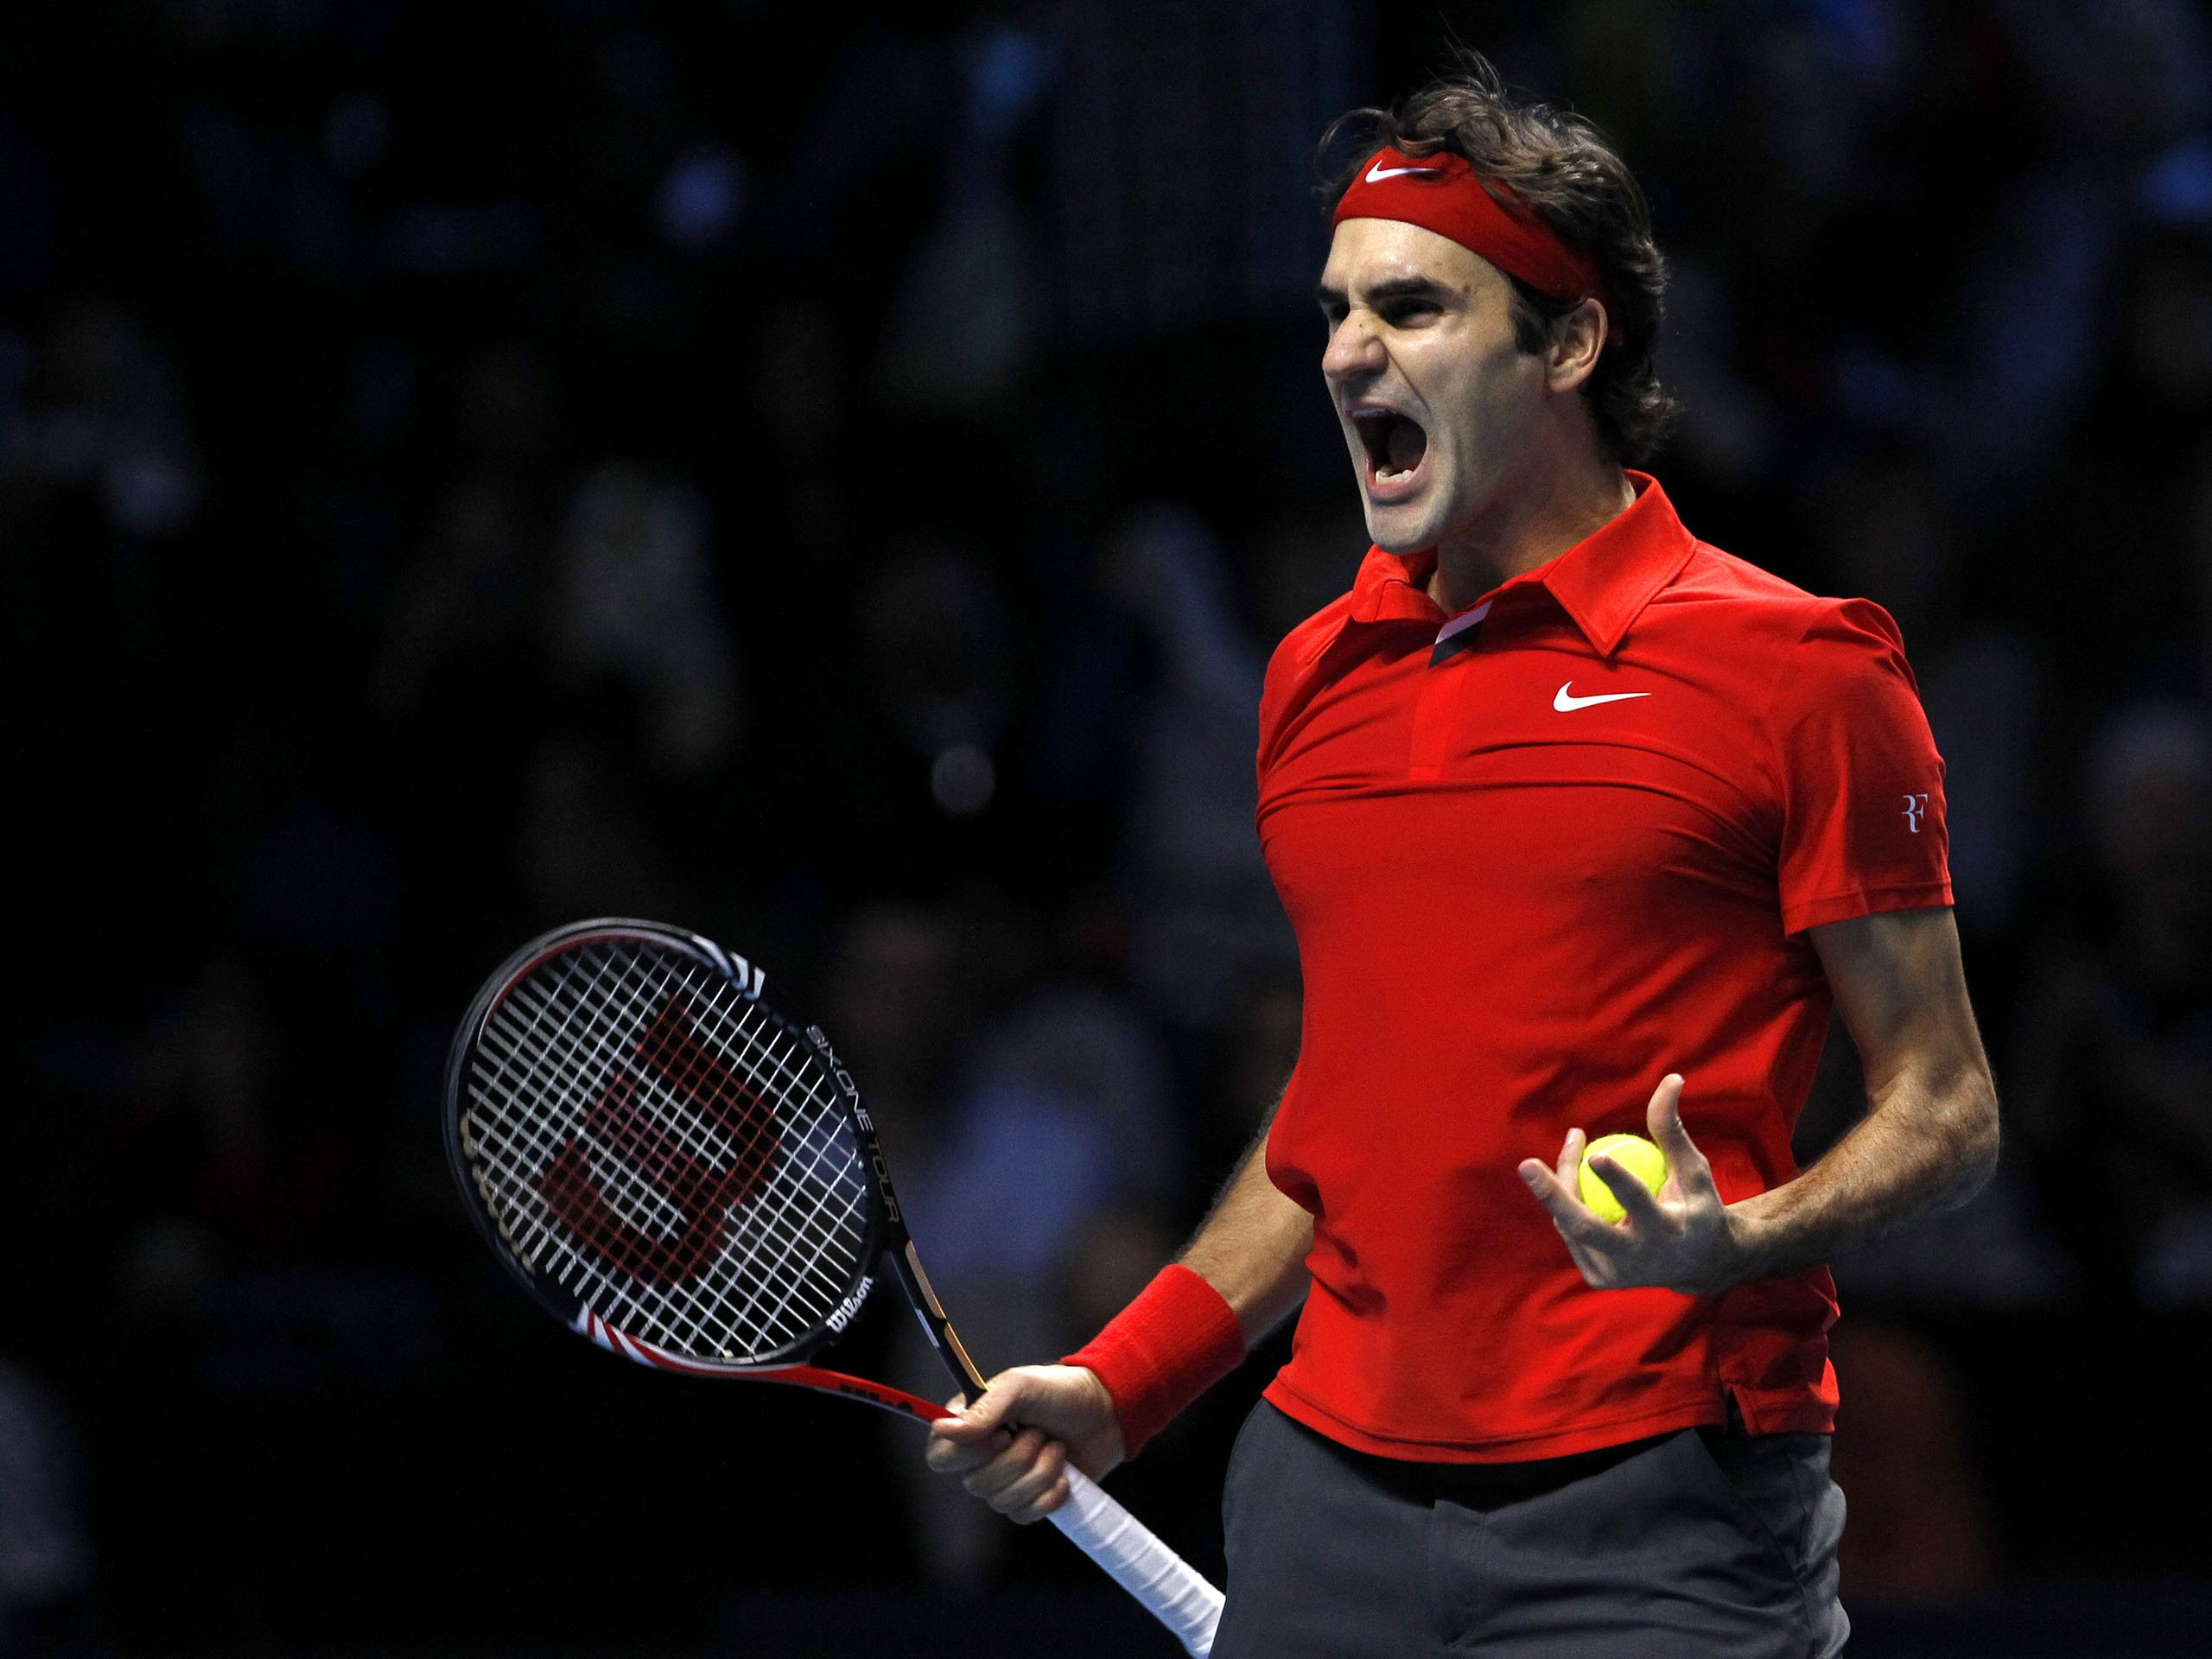 28 Roger Federer HD Quality Background Images GsFDcY 2560x1920